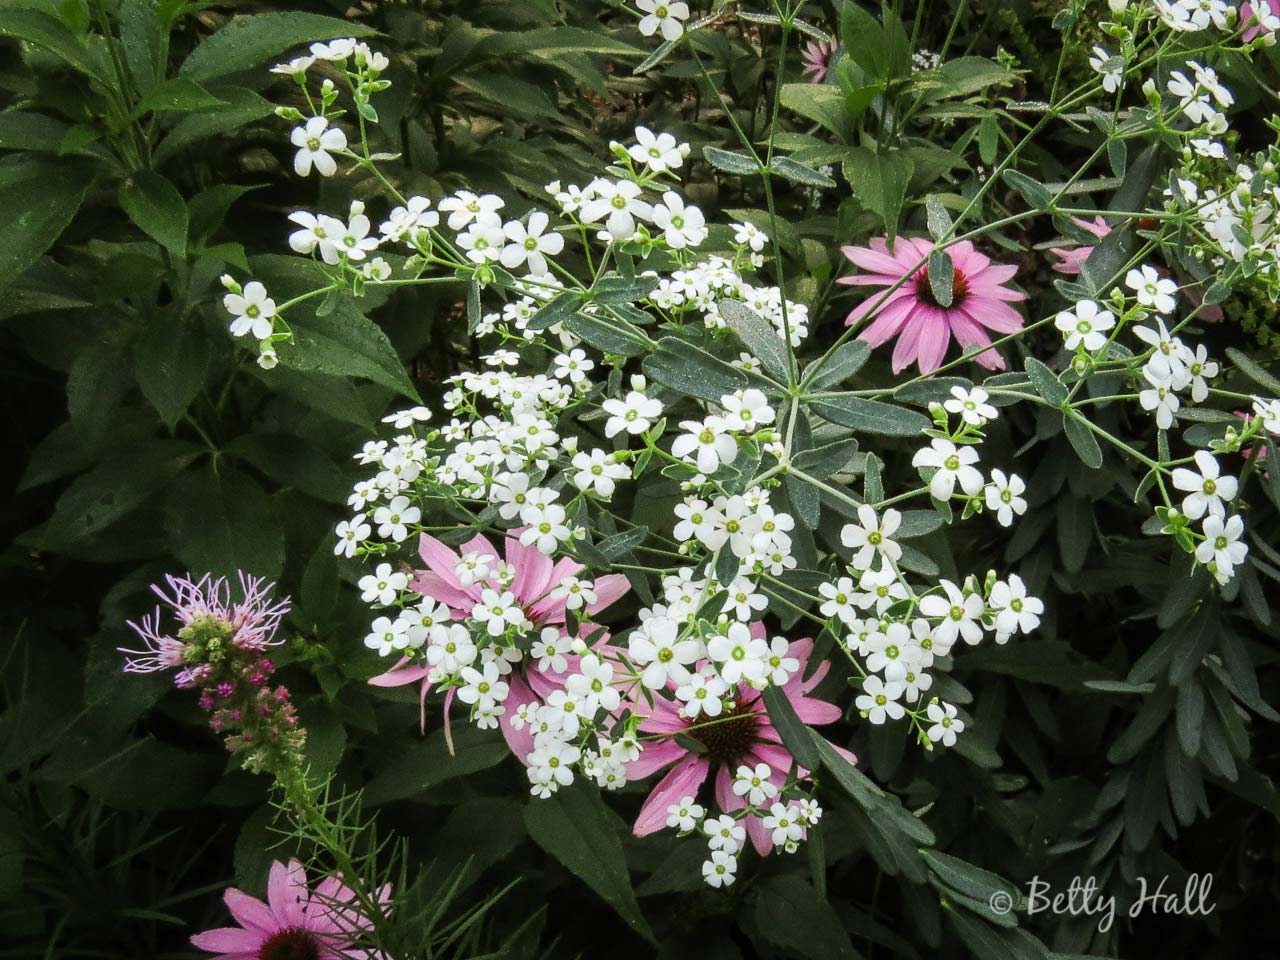 Flowering Spurge and Purple Coneflowers